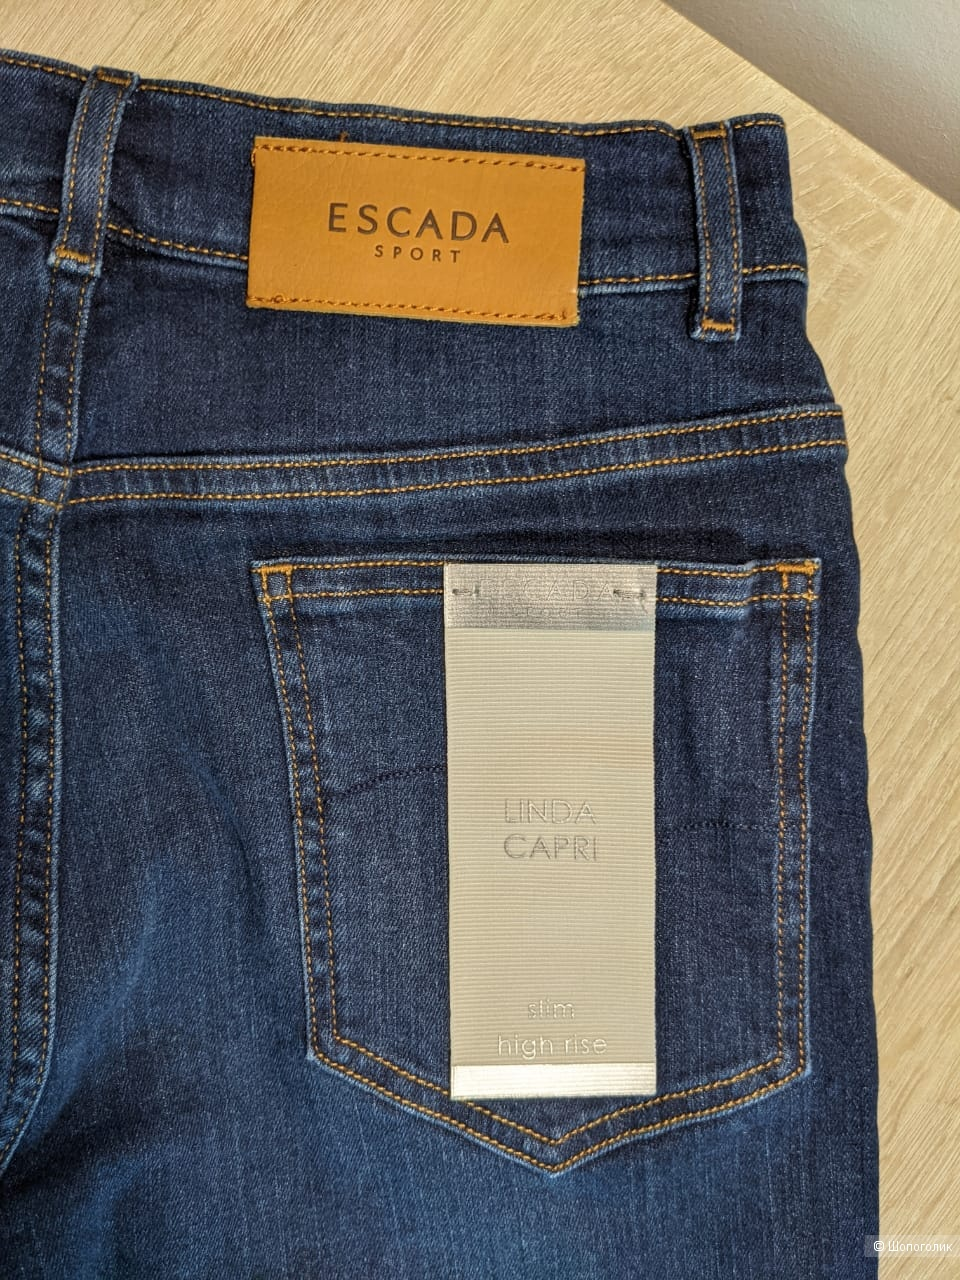 ДЖИНСЫ ESCADA SPORT  LINDA (slim high rise), размер 32